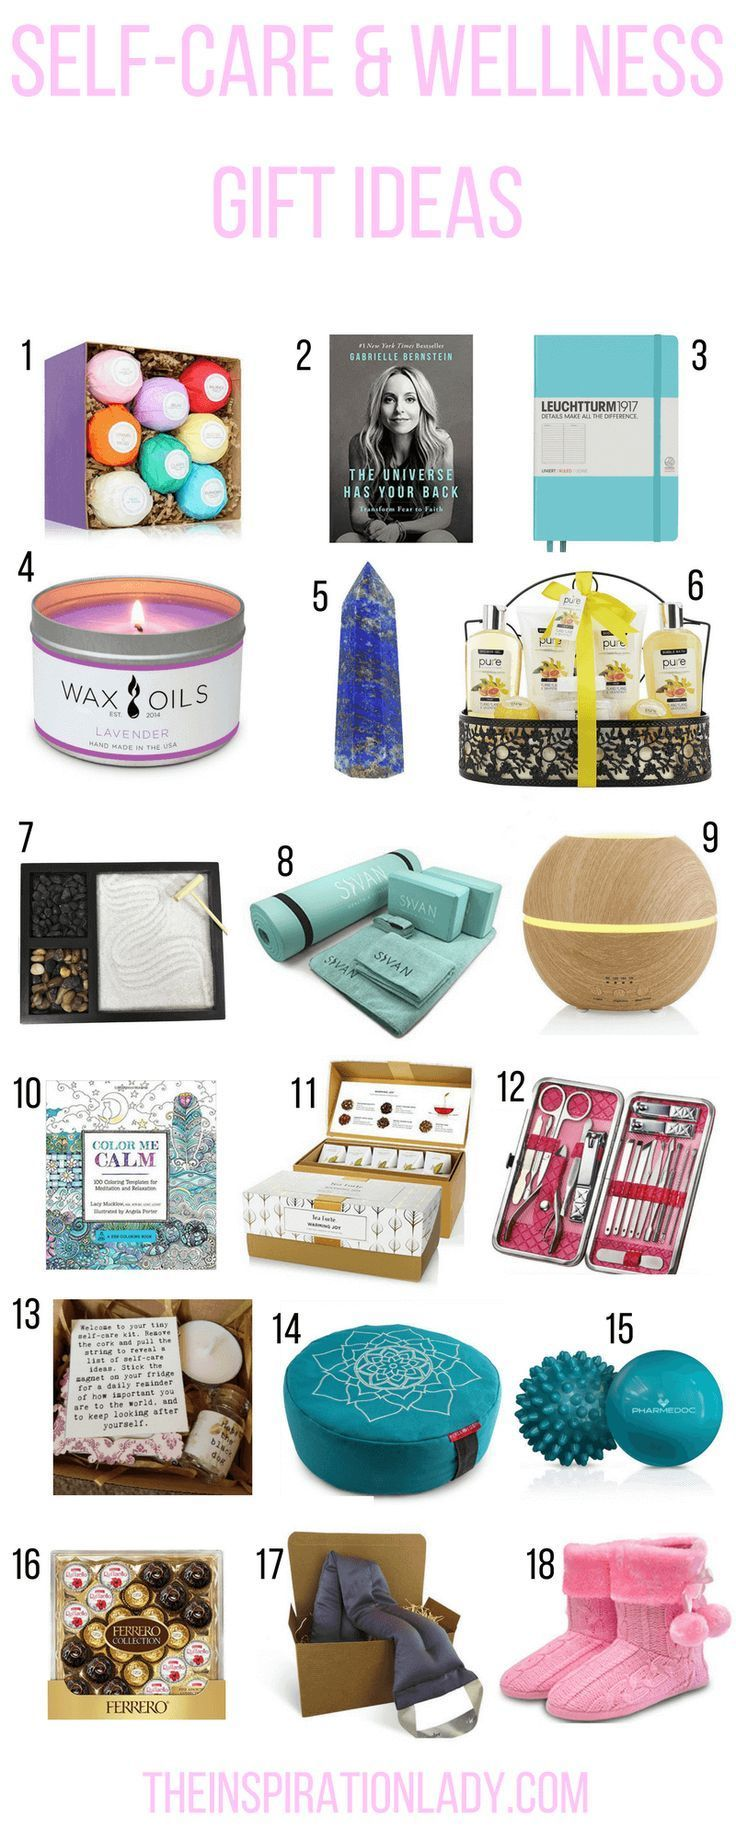 22 selfcare and wellness gift ideas relaxation gifts